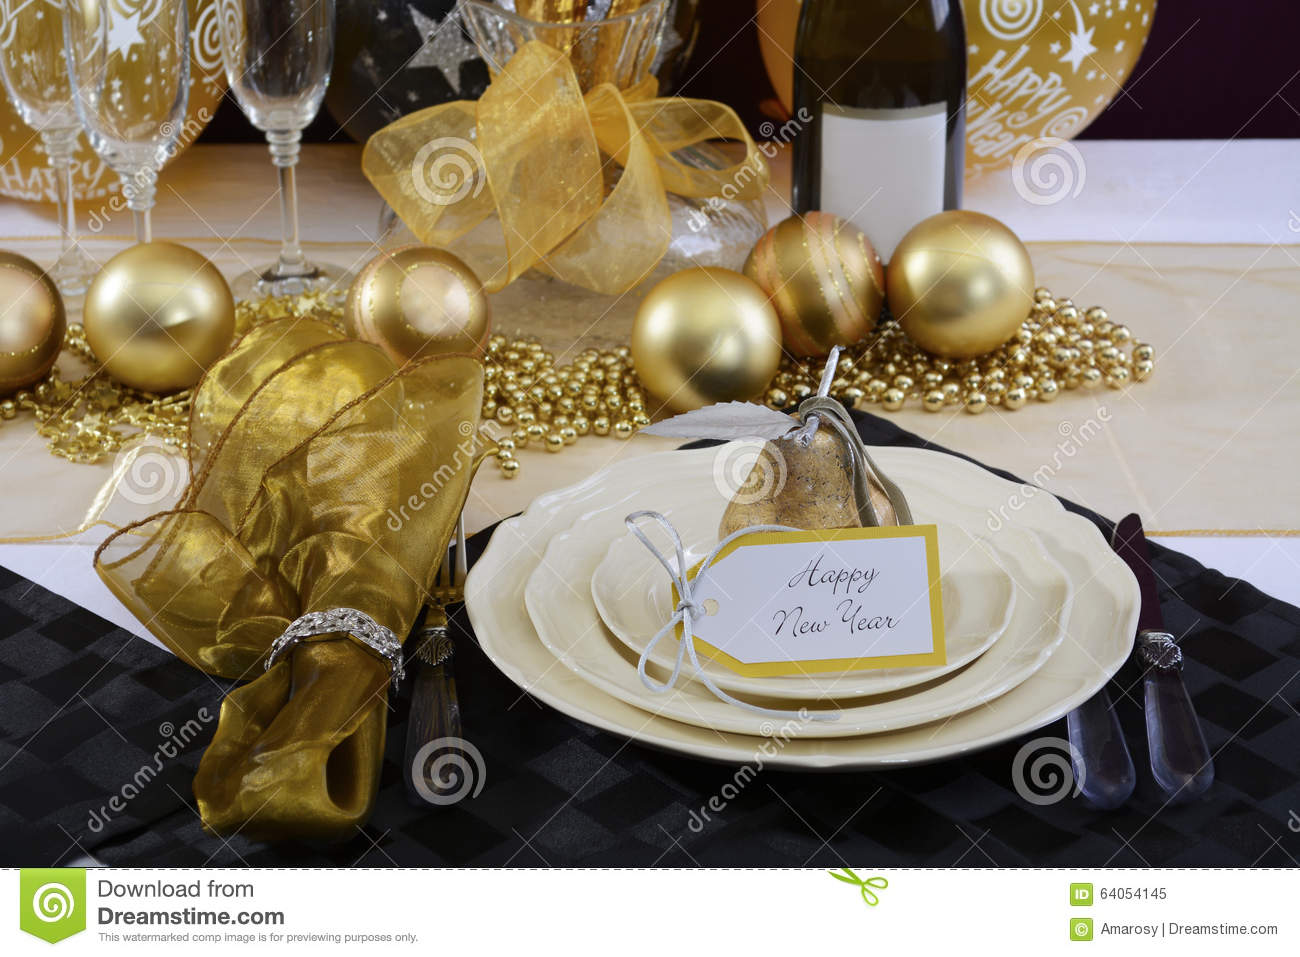 New years eve dinner table setting stock photo image - New year dinner table setting ...